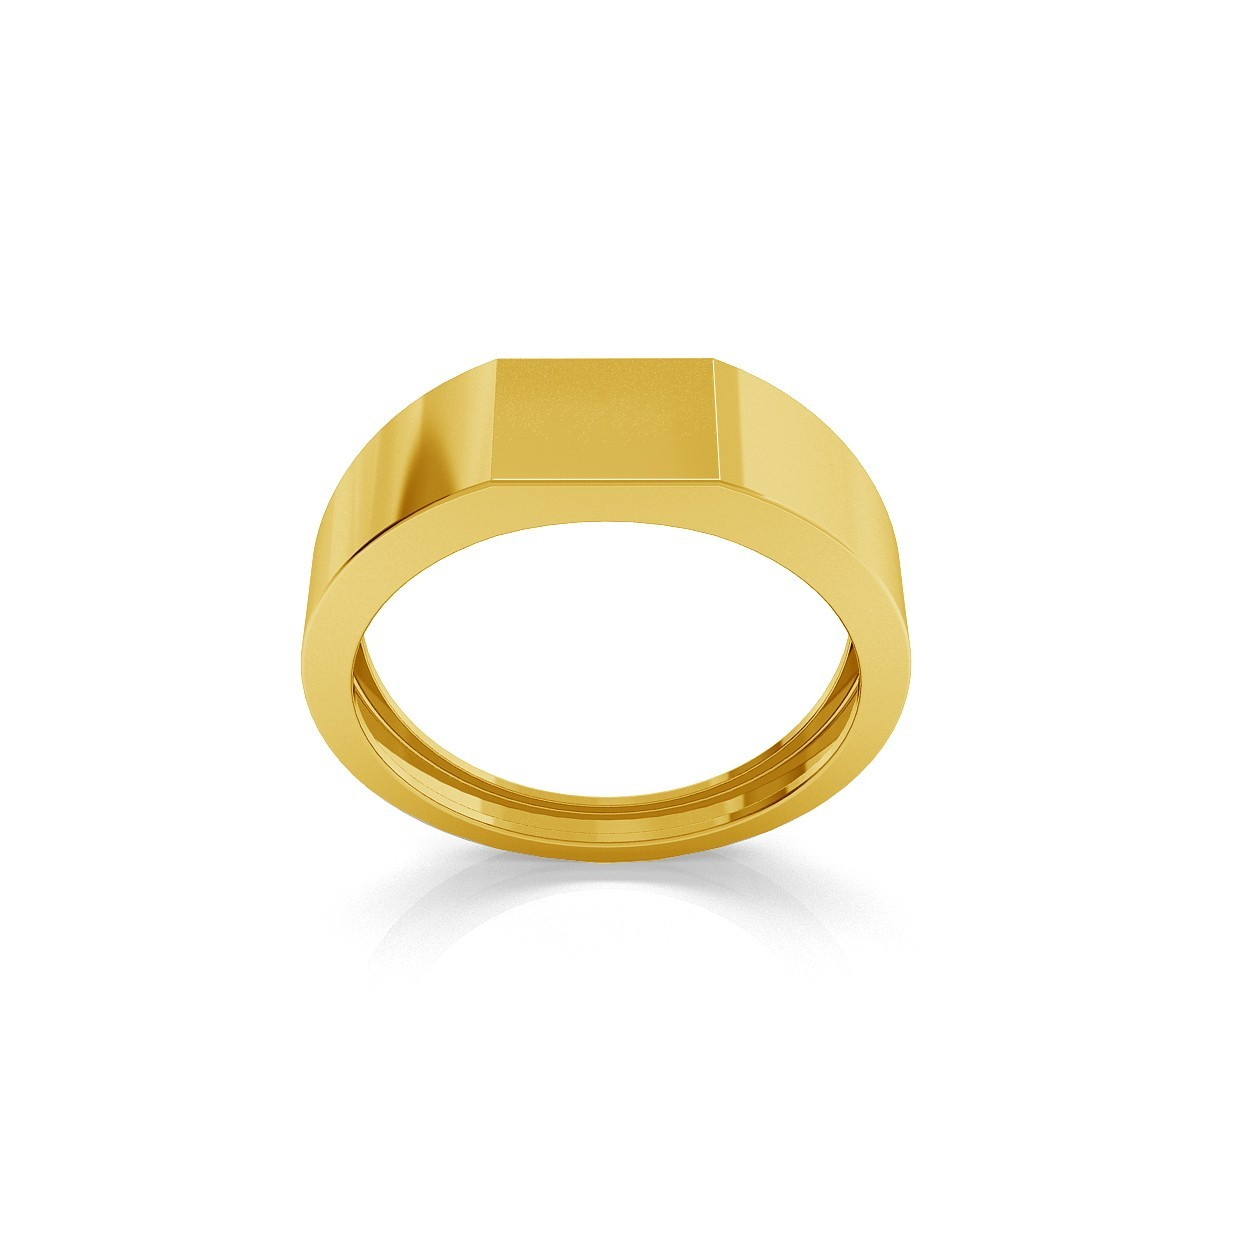 MALE SIGNET, RING, ENGRAVED